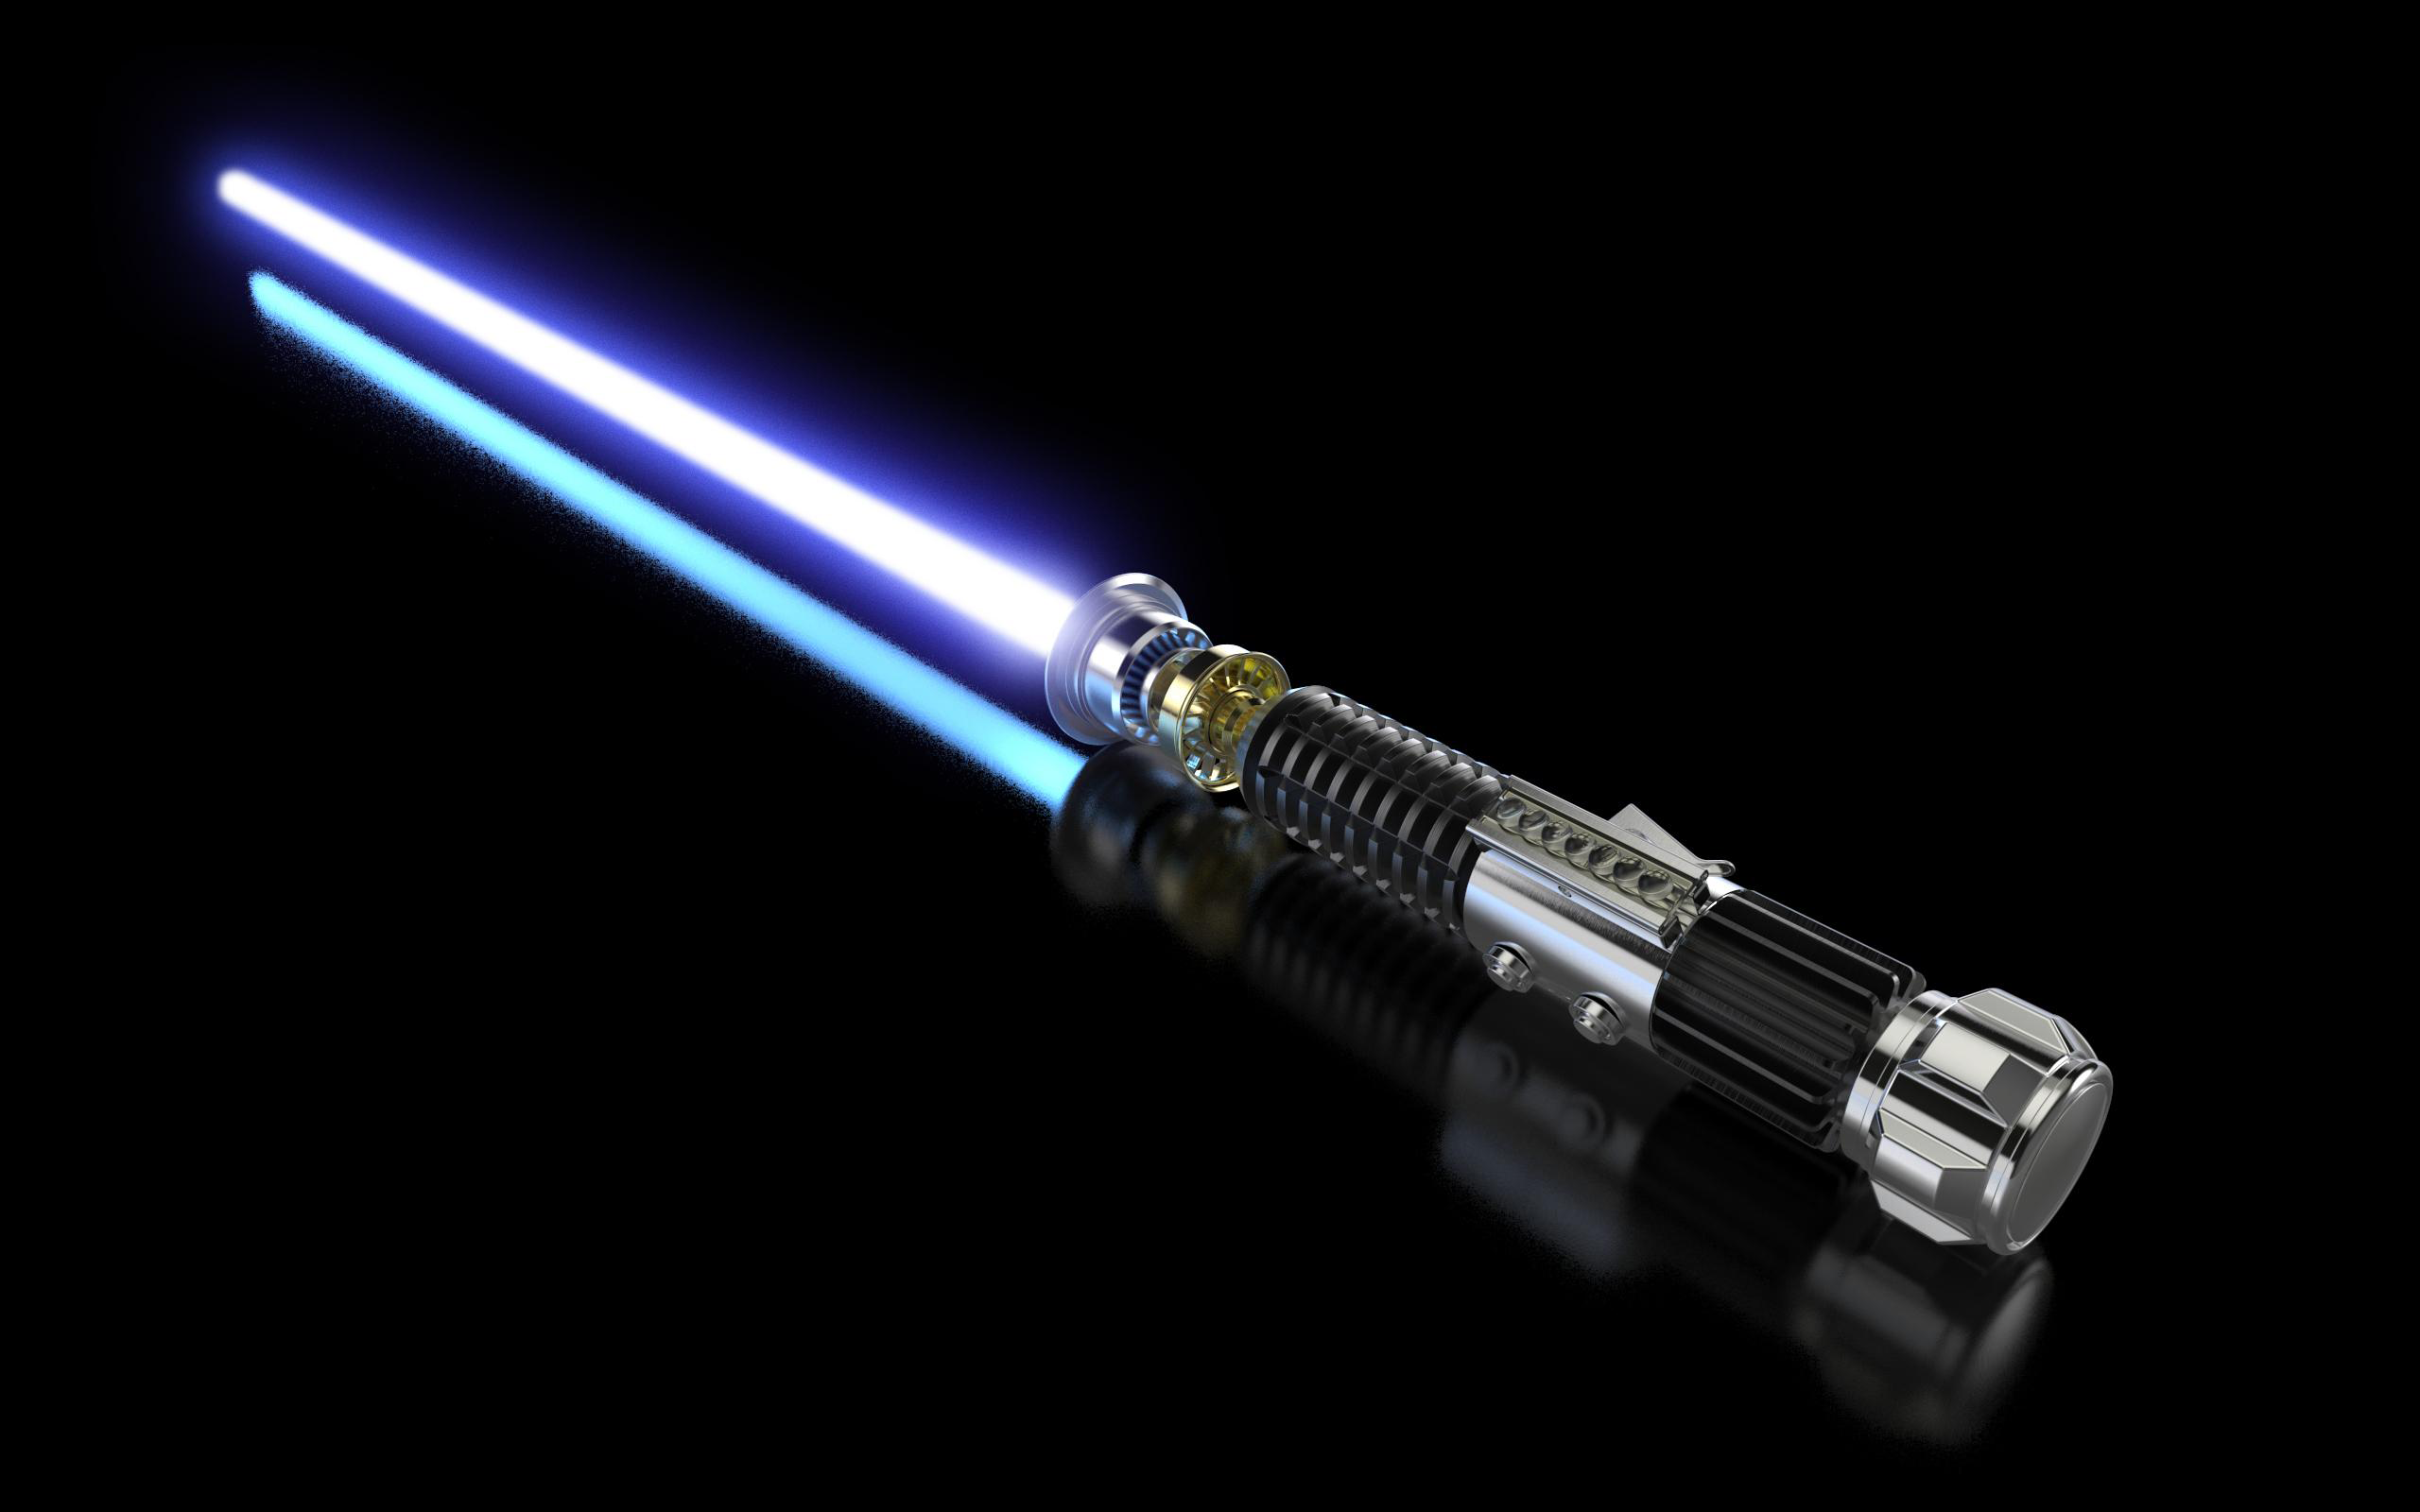 Lightsaber Star Wars Hd Movies 4k Wallpapers Images Backgrounds Photos And Pictures